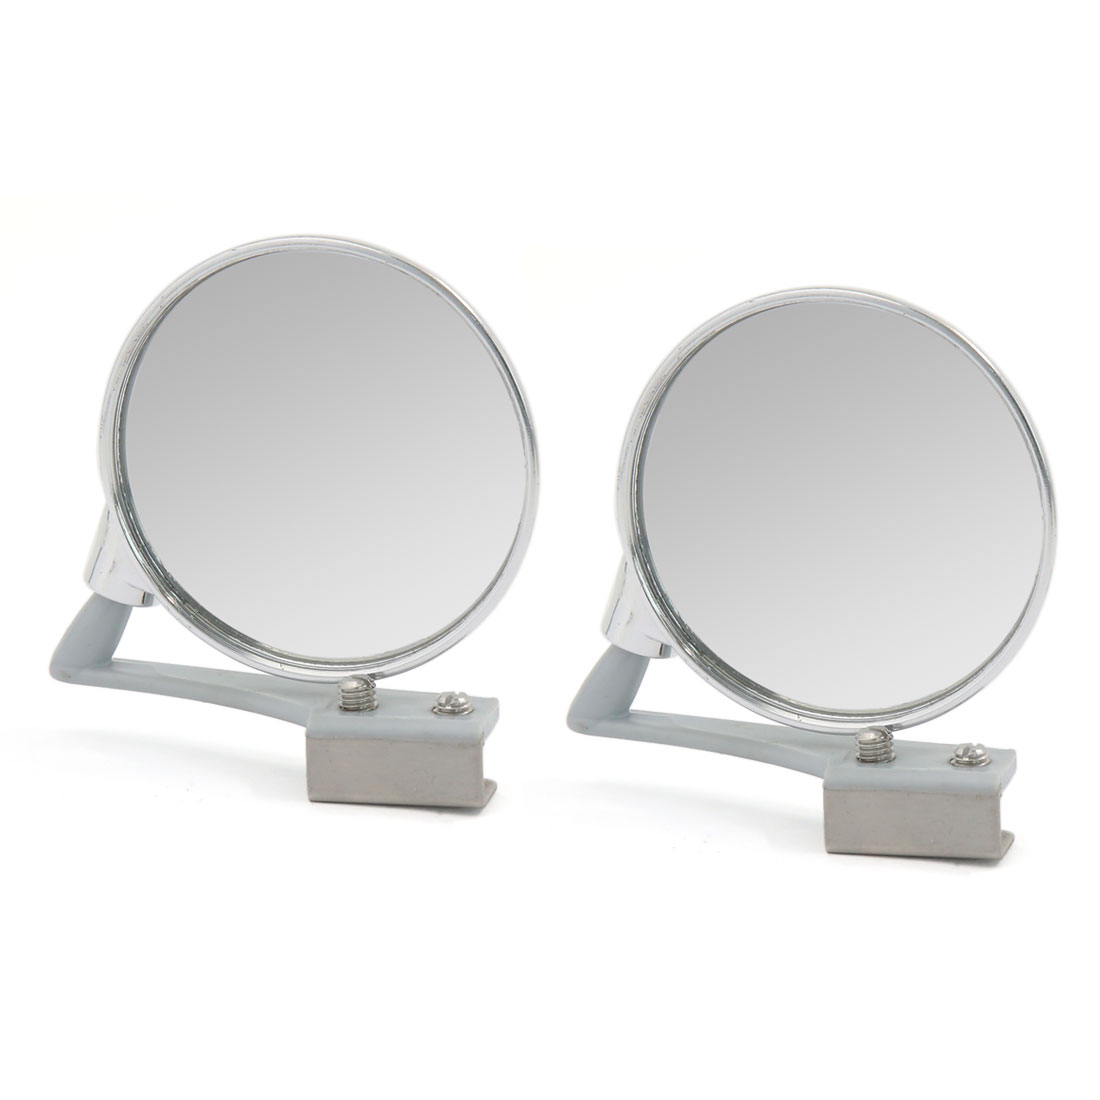 2pcs Silver Tone Adjustable 360 Degree Auto Wide Angle Curved Rear View Mirror